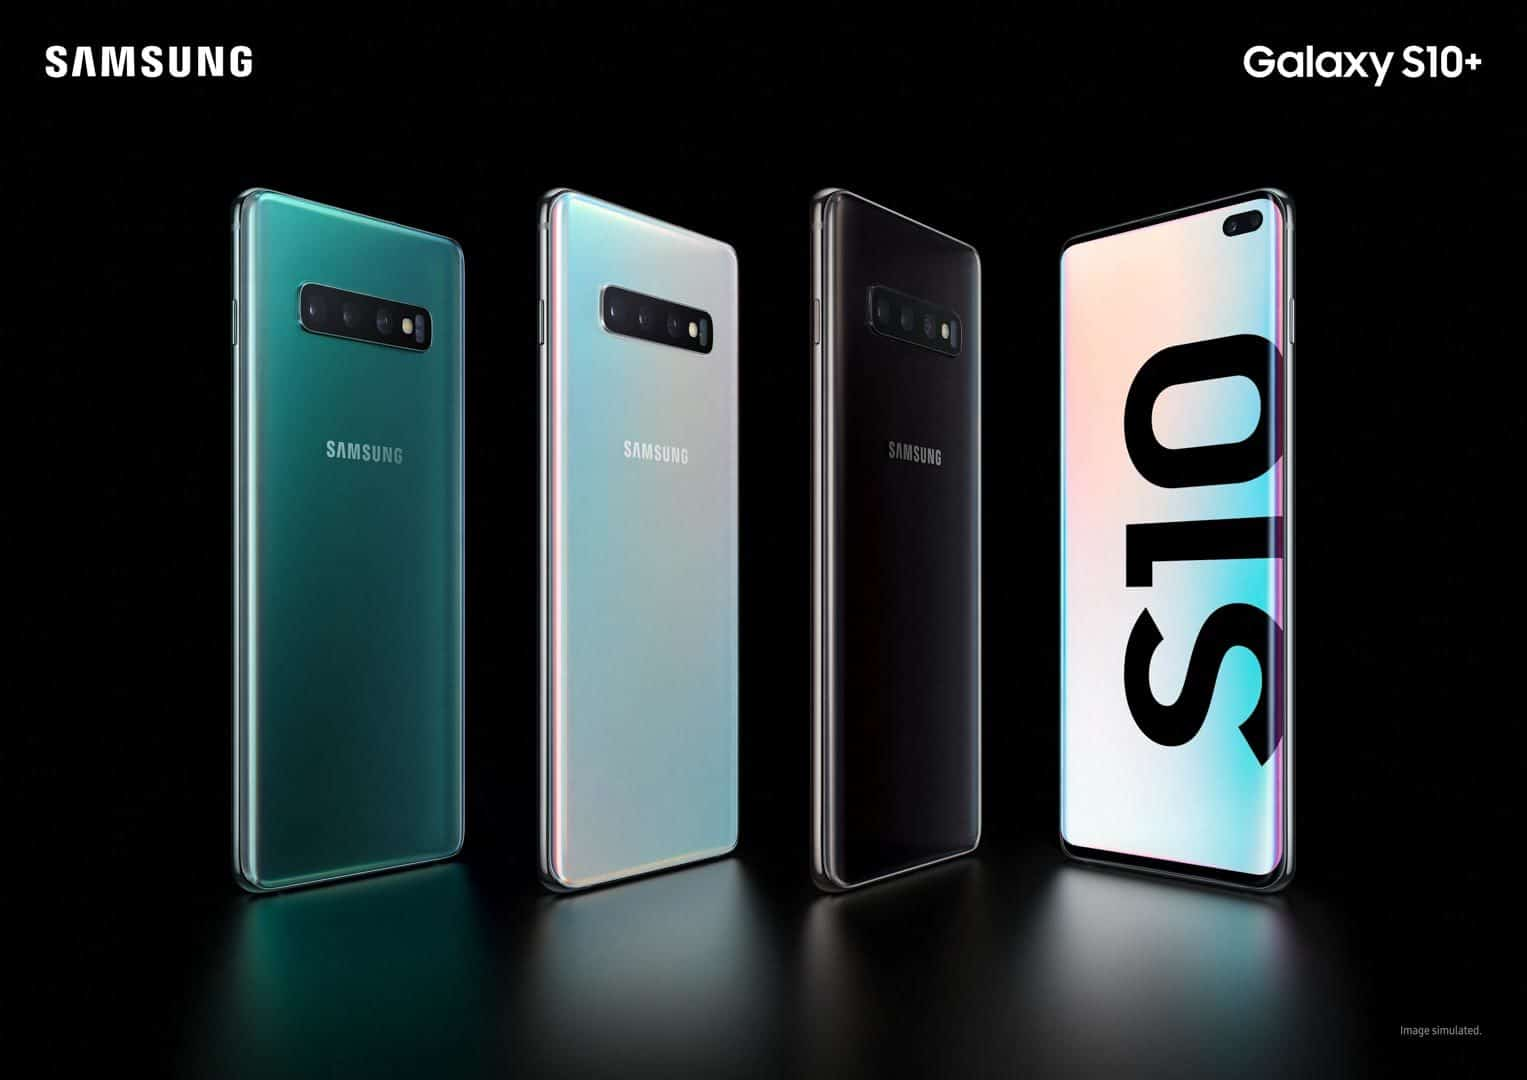 Samsung Unpack 2019: A foldable phone, Galaxy S10, and we